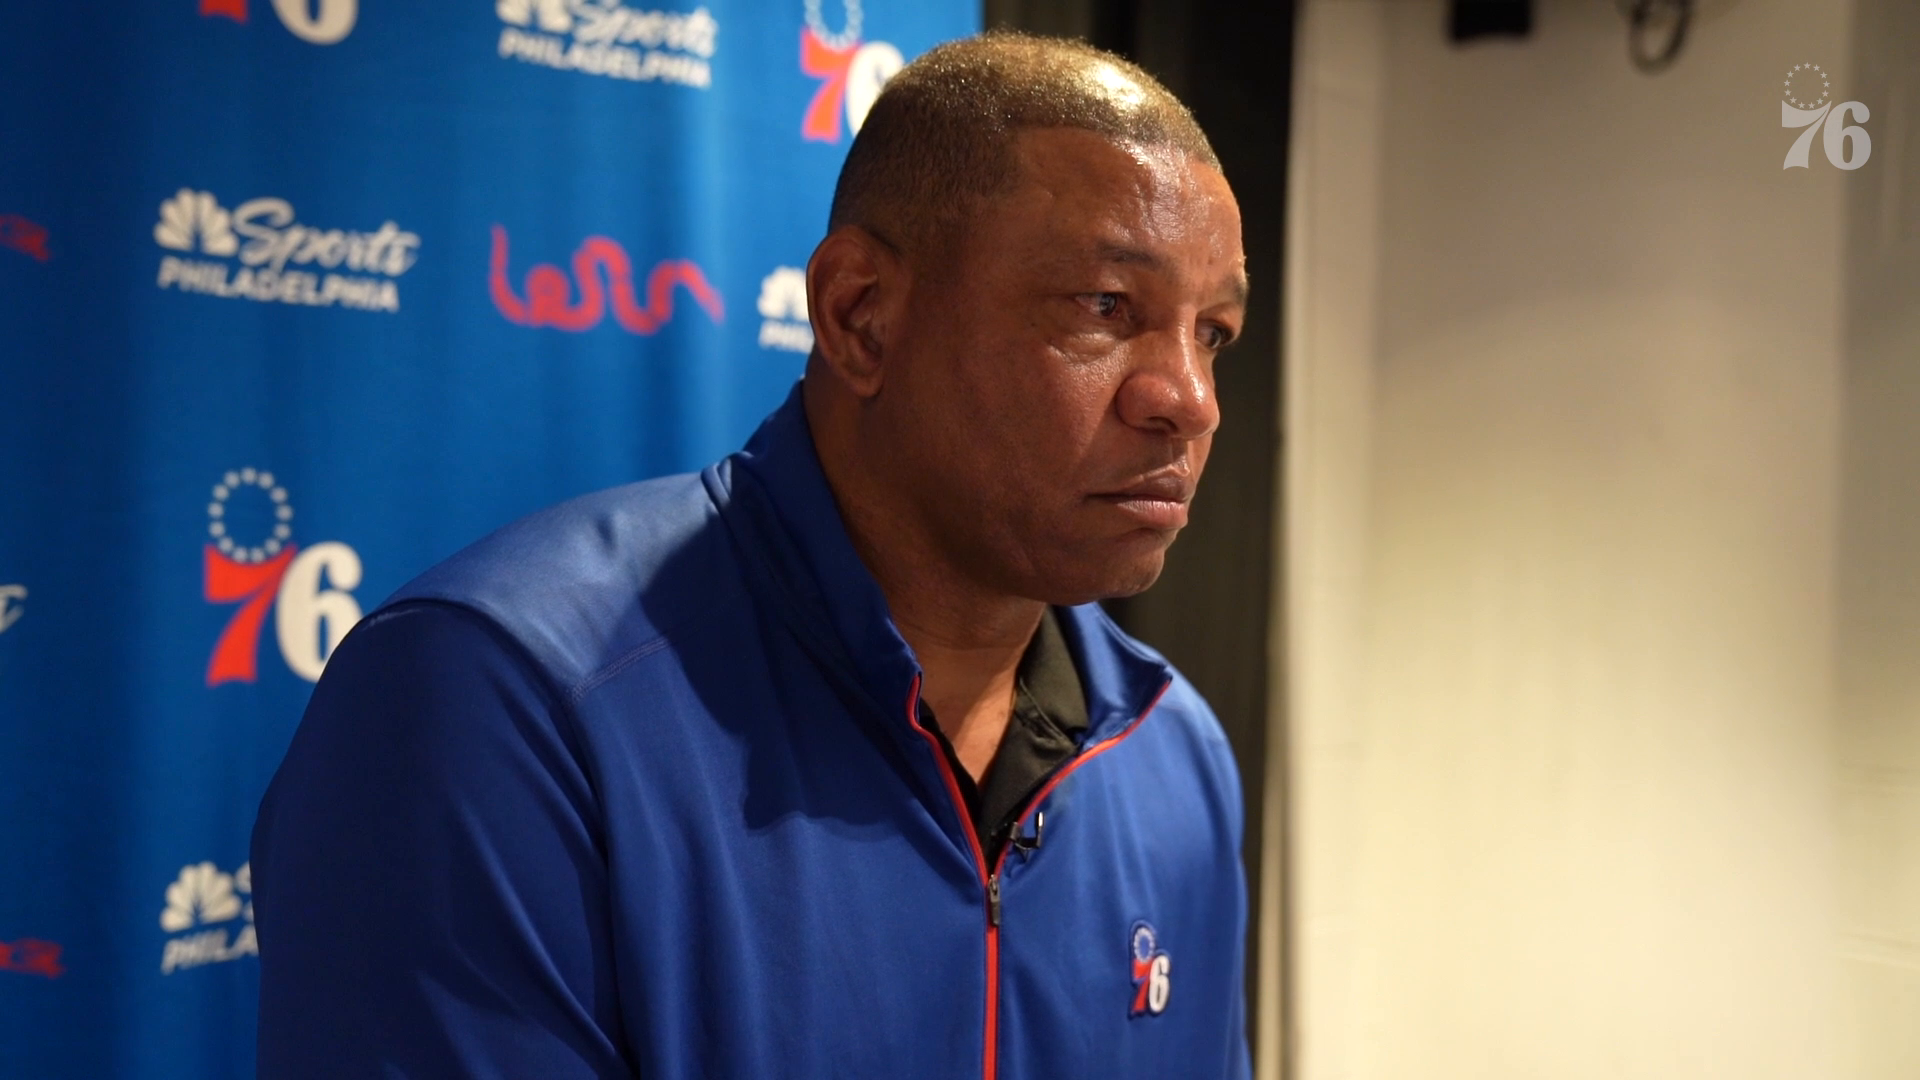 Doc Rivers | Postgame Media @ Miami Heat (05.13.21)